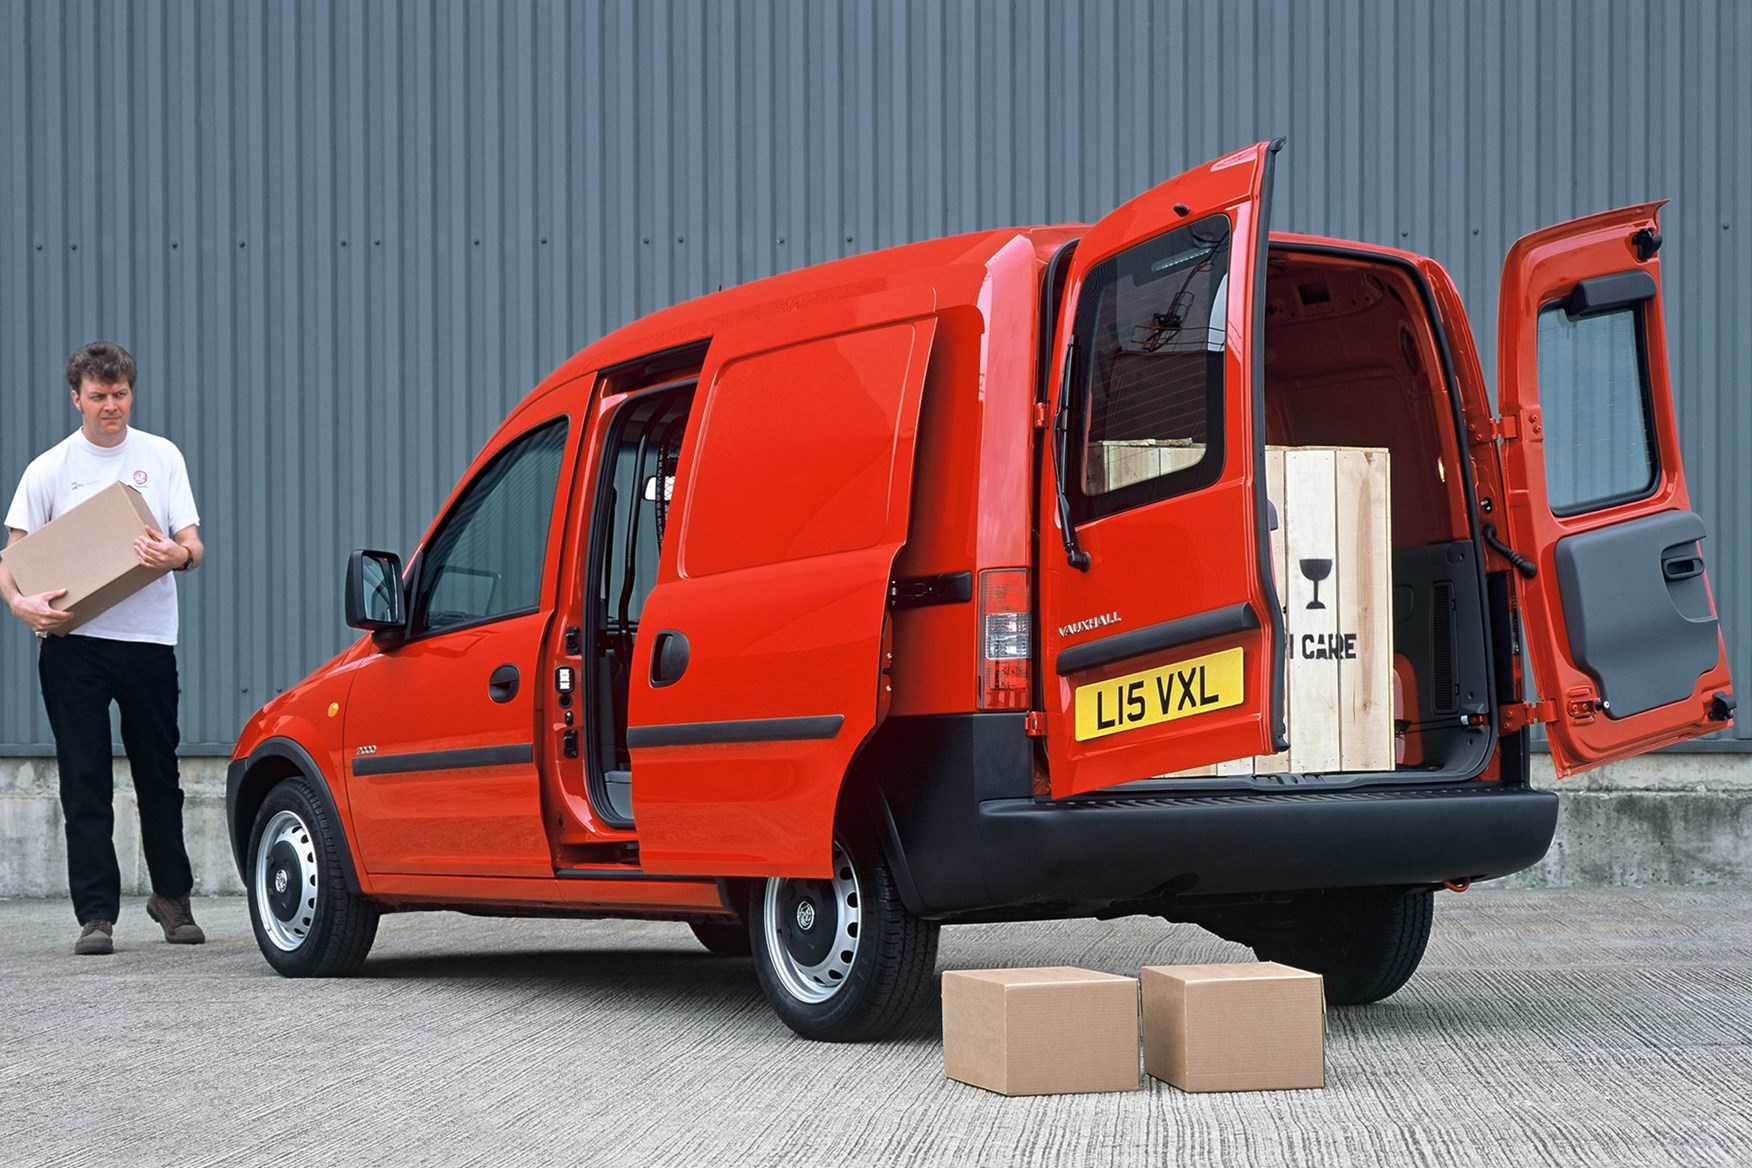 Vauxhall Combo review on Parkers Vans - load area dimensions